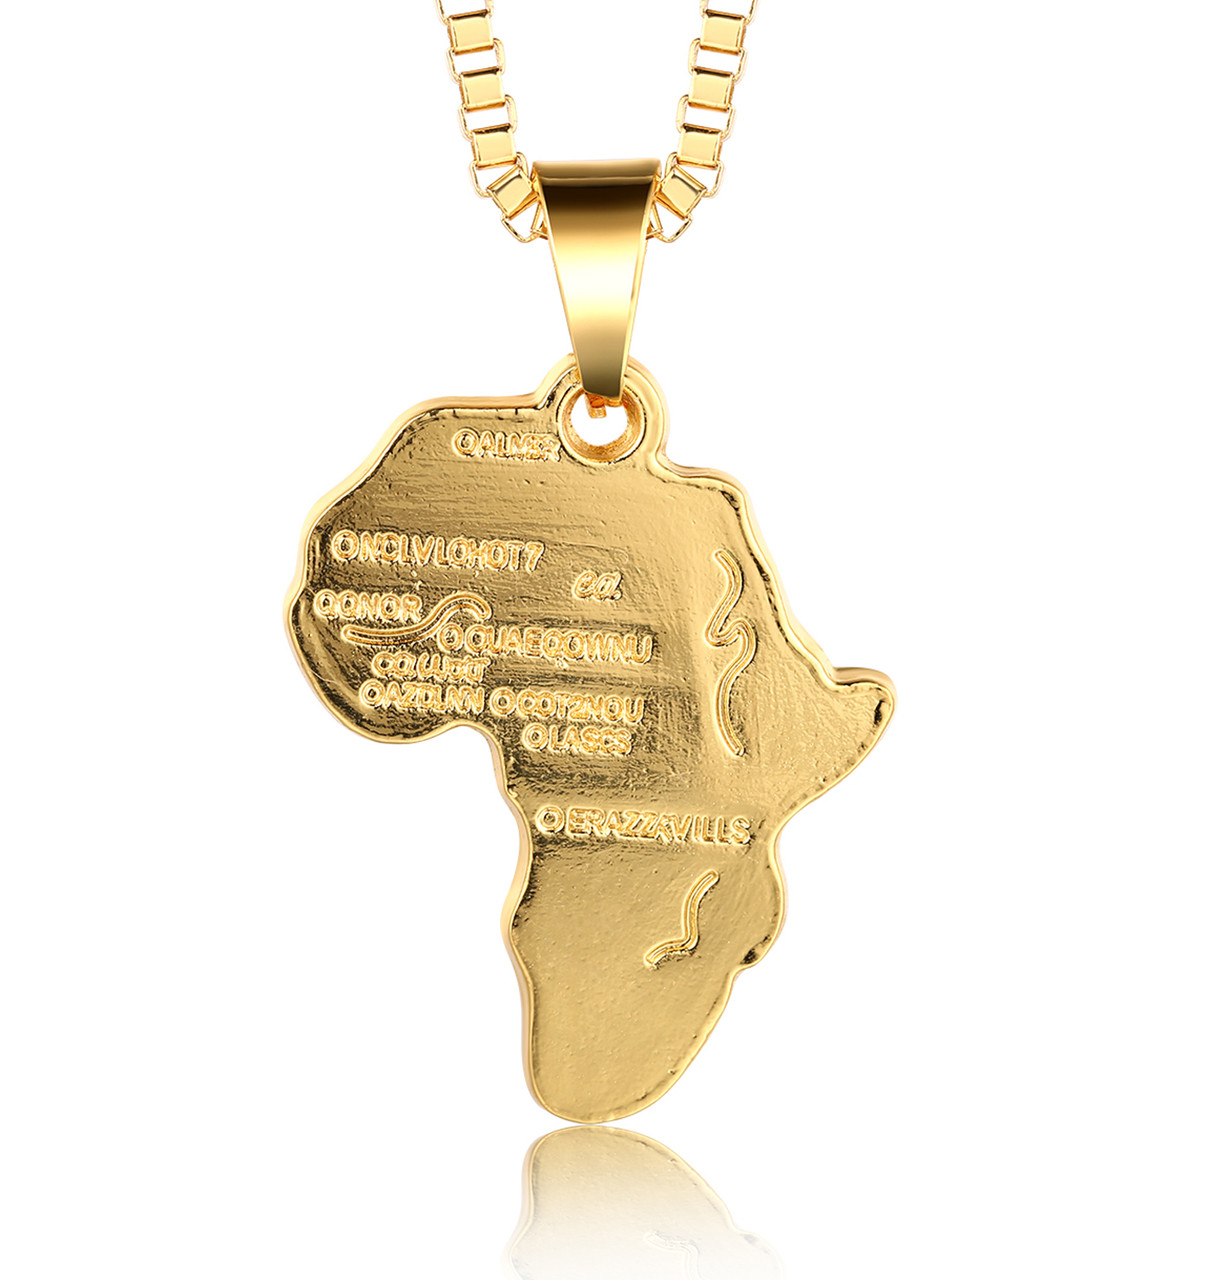 Halukakah africa map 18k real gold plated pendant necklacecz halukakah africa map 18k real gold plated pendant necklacecz inlaywith aloadofball Choice Image